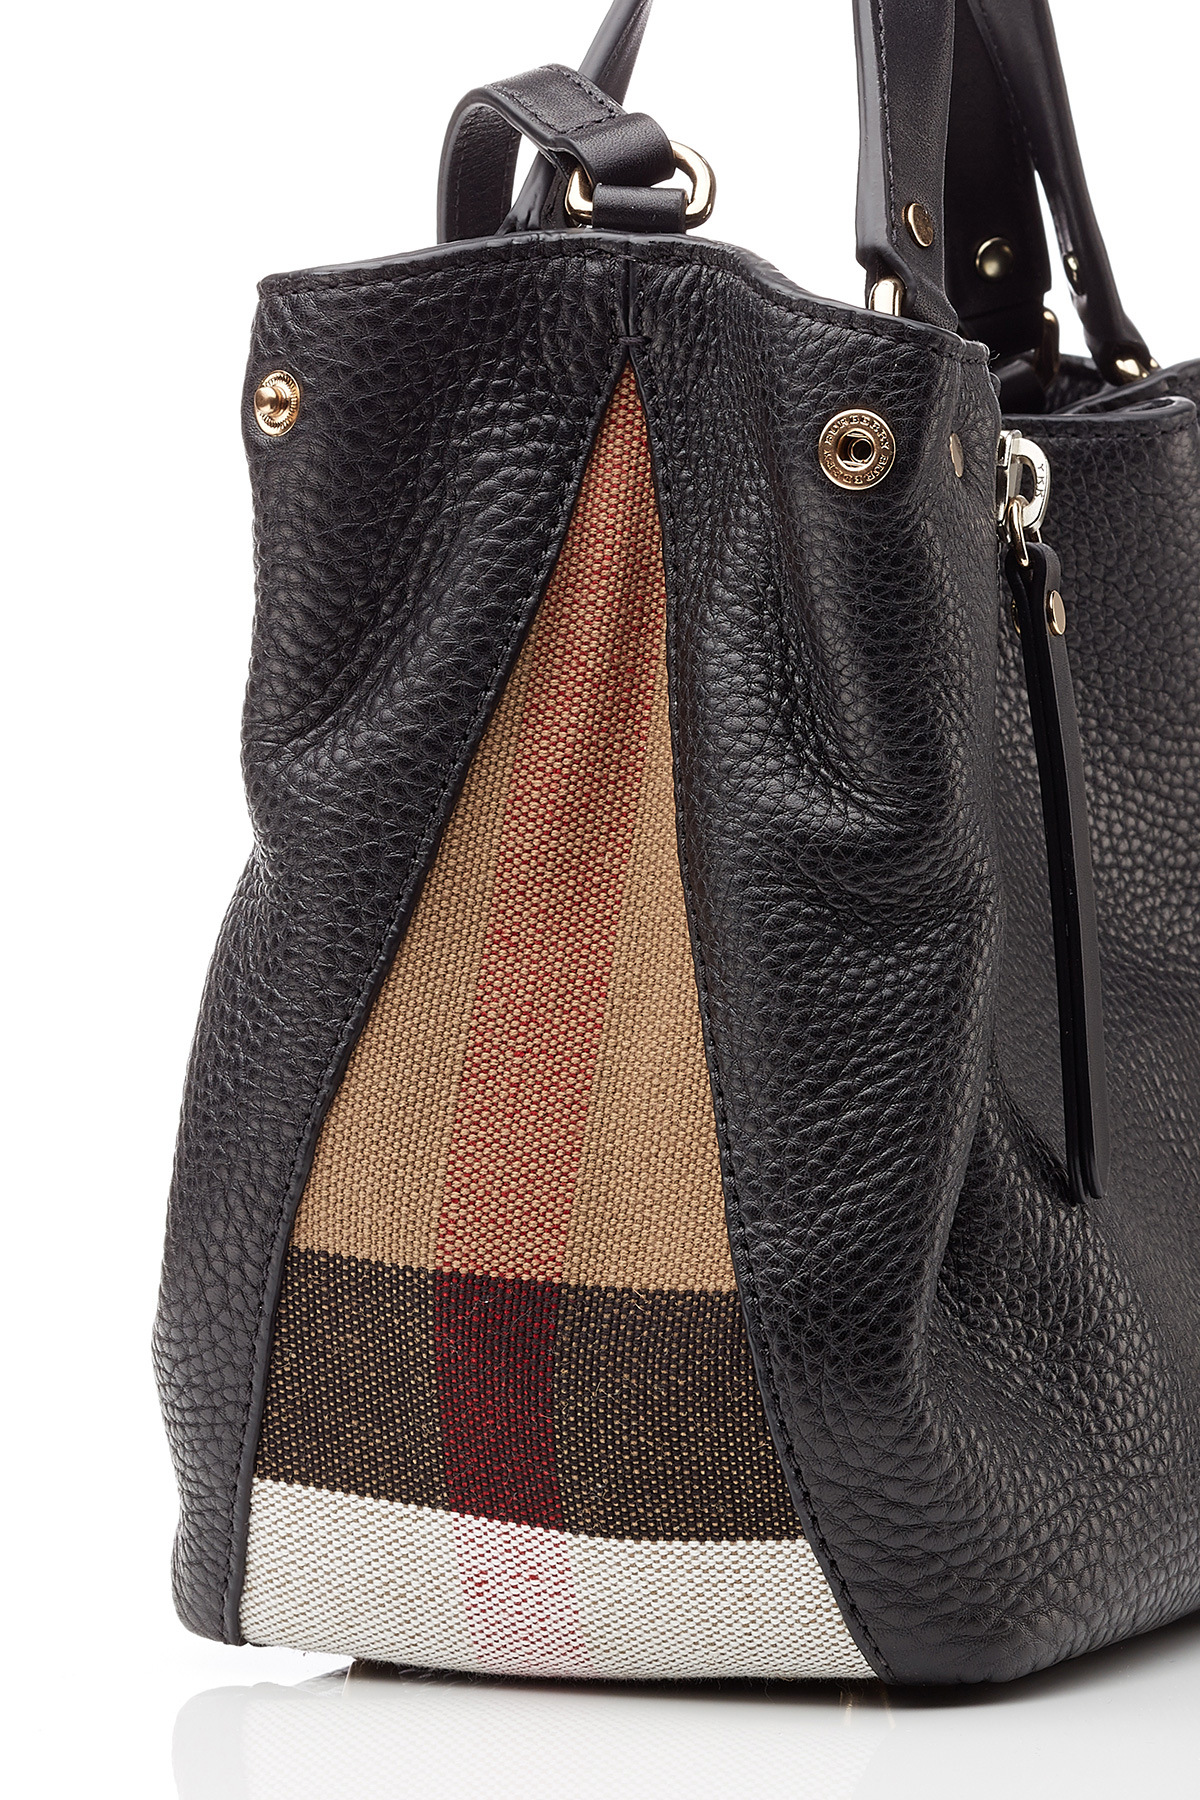 33204ac8497 Lyst burberry maidstone leather tote in black jpg 1200x1800 Burberry  leather tote